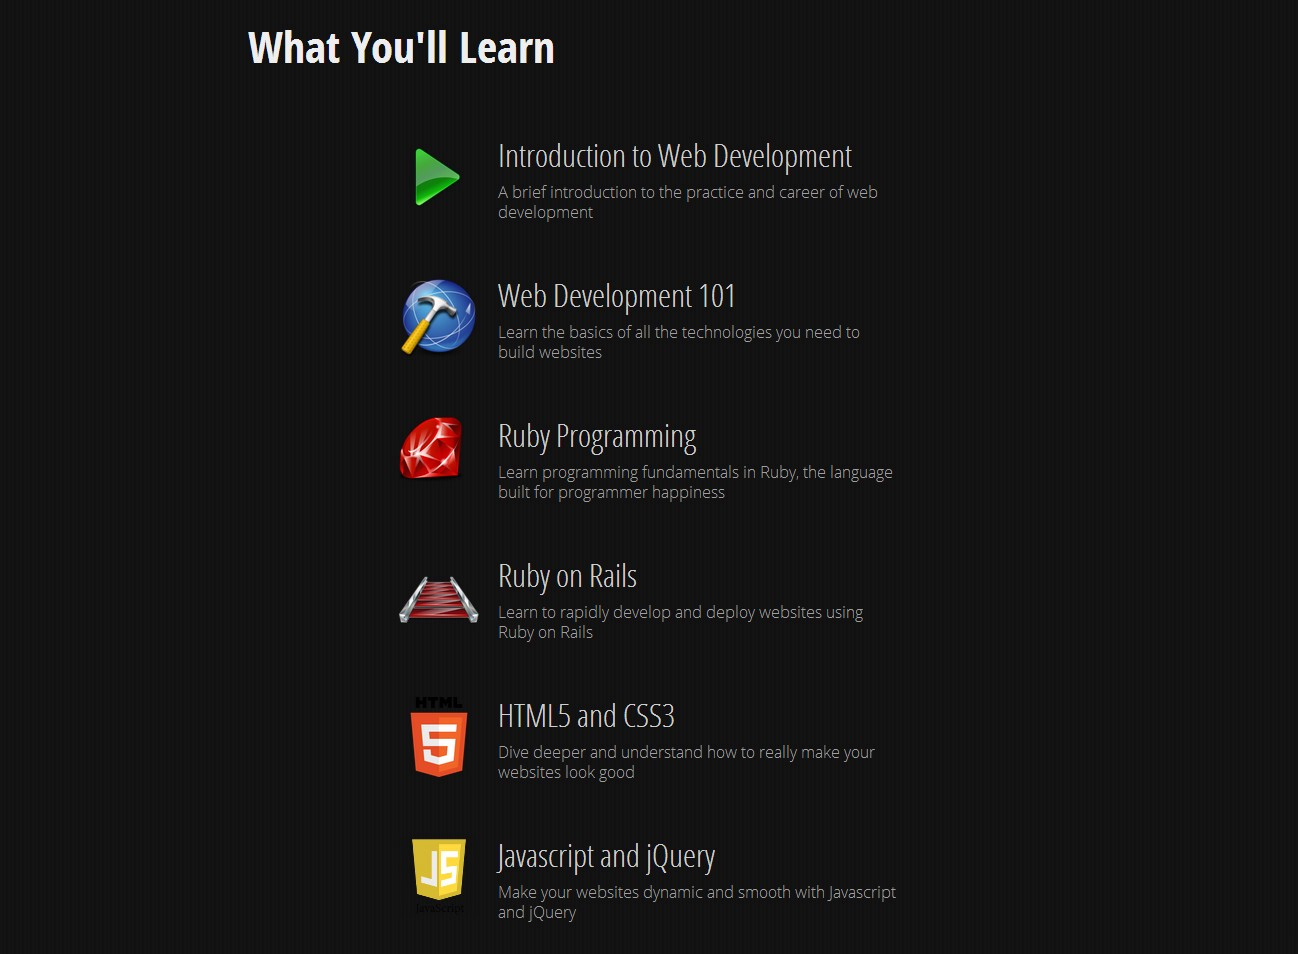 Top free online resources to learn coding level up medium topics taught html css javascript jquery ruby programming ruby on rails baditri Image collections